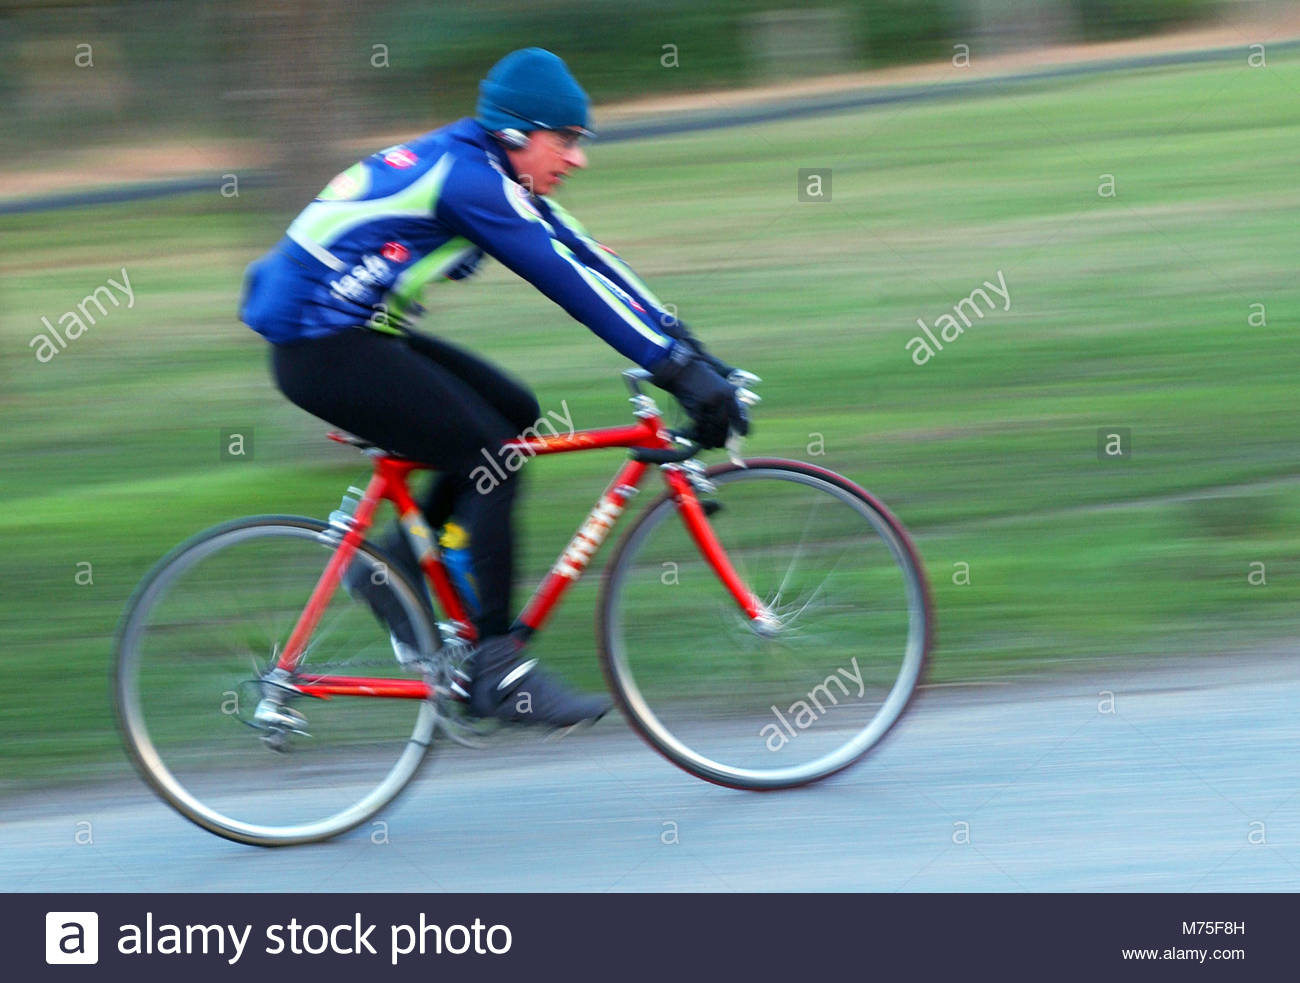 File photo dated 01/03/04 of a cyclist, as the Department for Transport (DfT) has said that there is a strong case Stock Photo